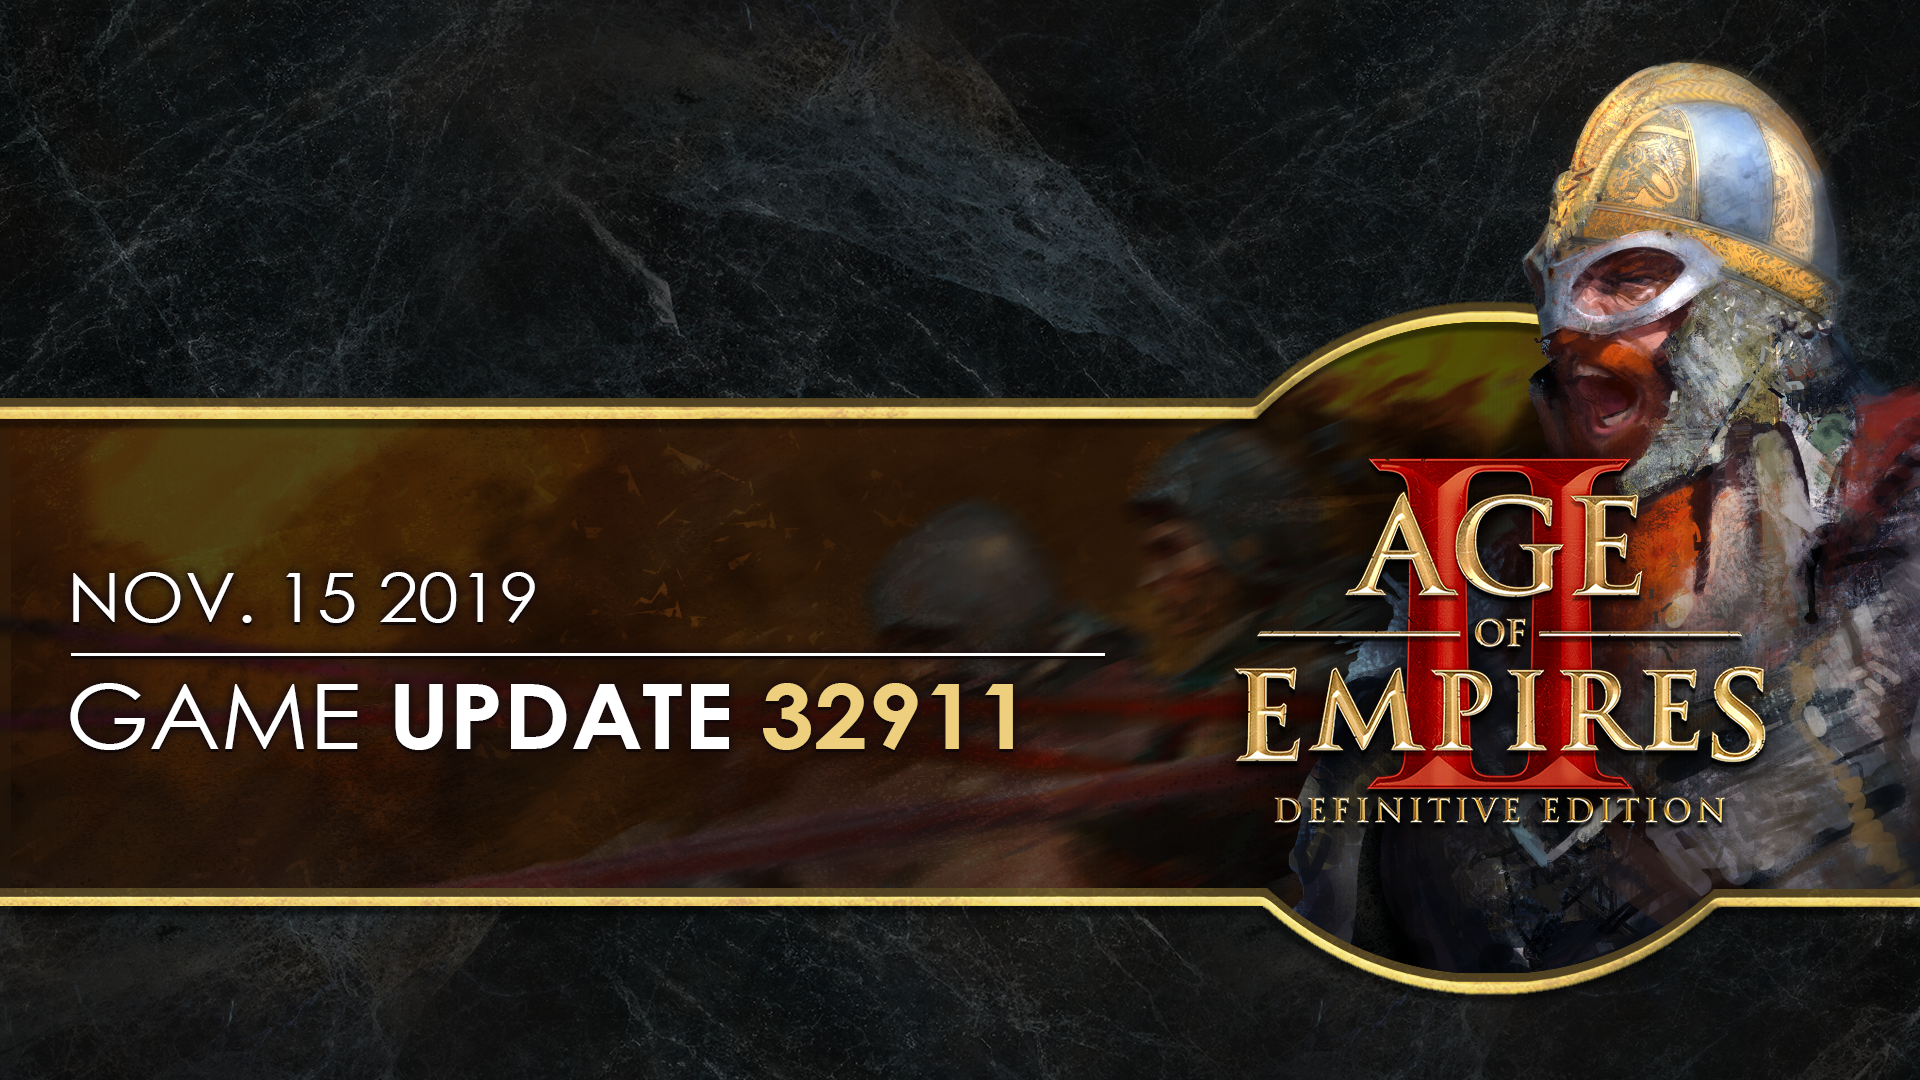 'Age of Empires II: Definitive Edition — Update 32911' thumbnail